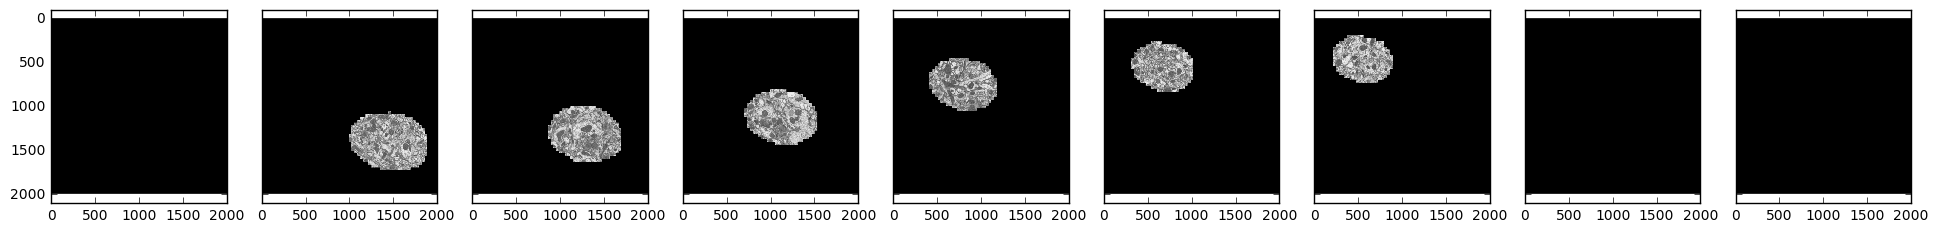 Sample electron microscopy images over time